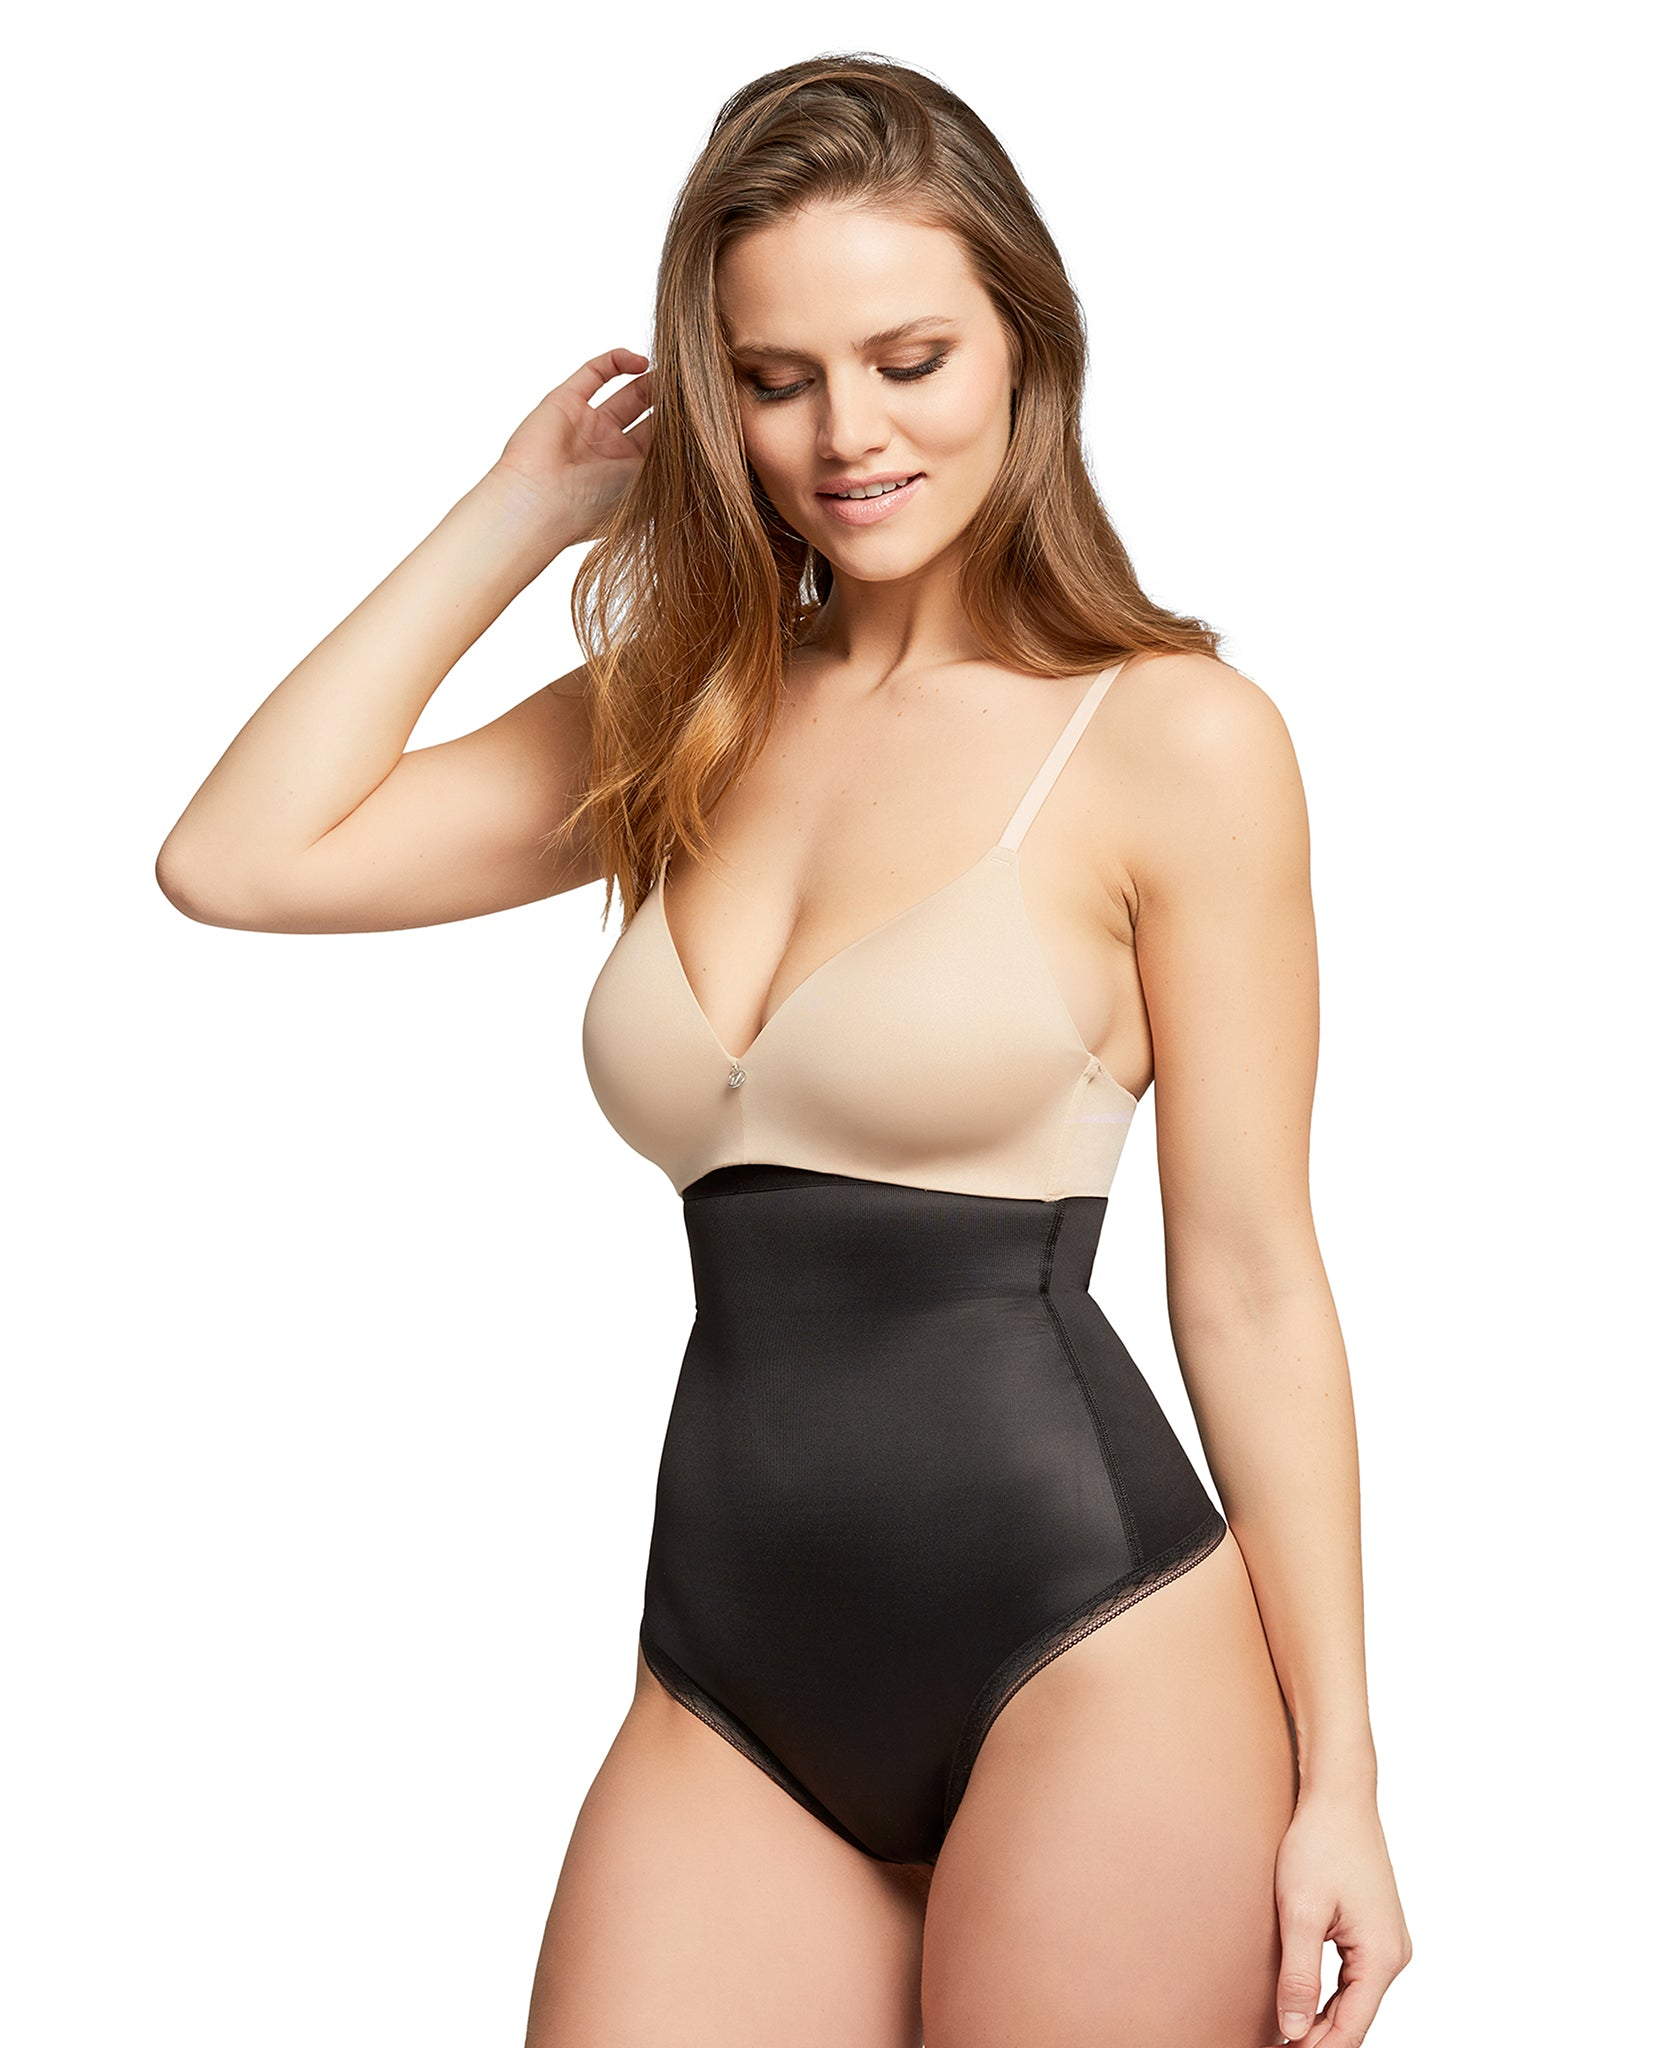 List of Wholesale Lingerie Sellers for New Small Businesses